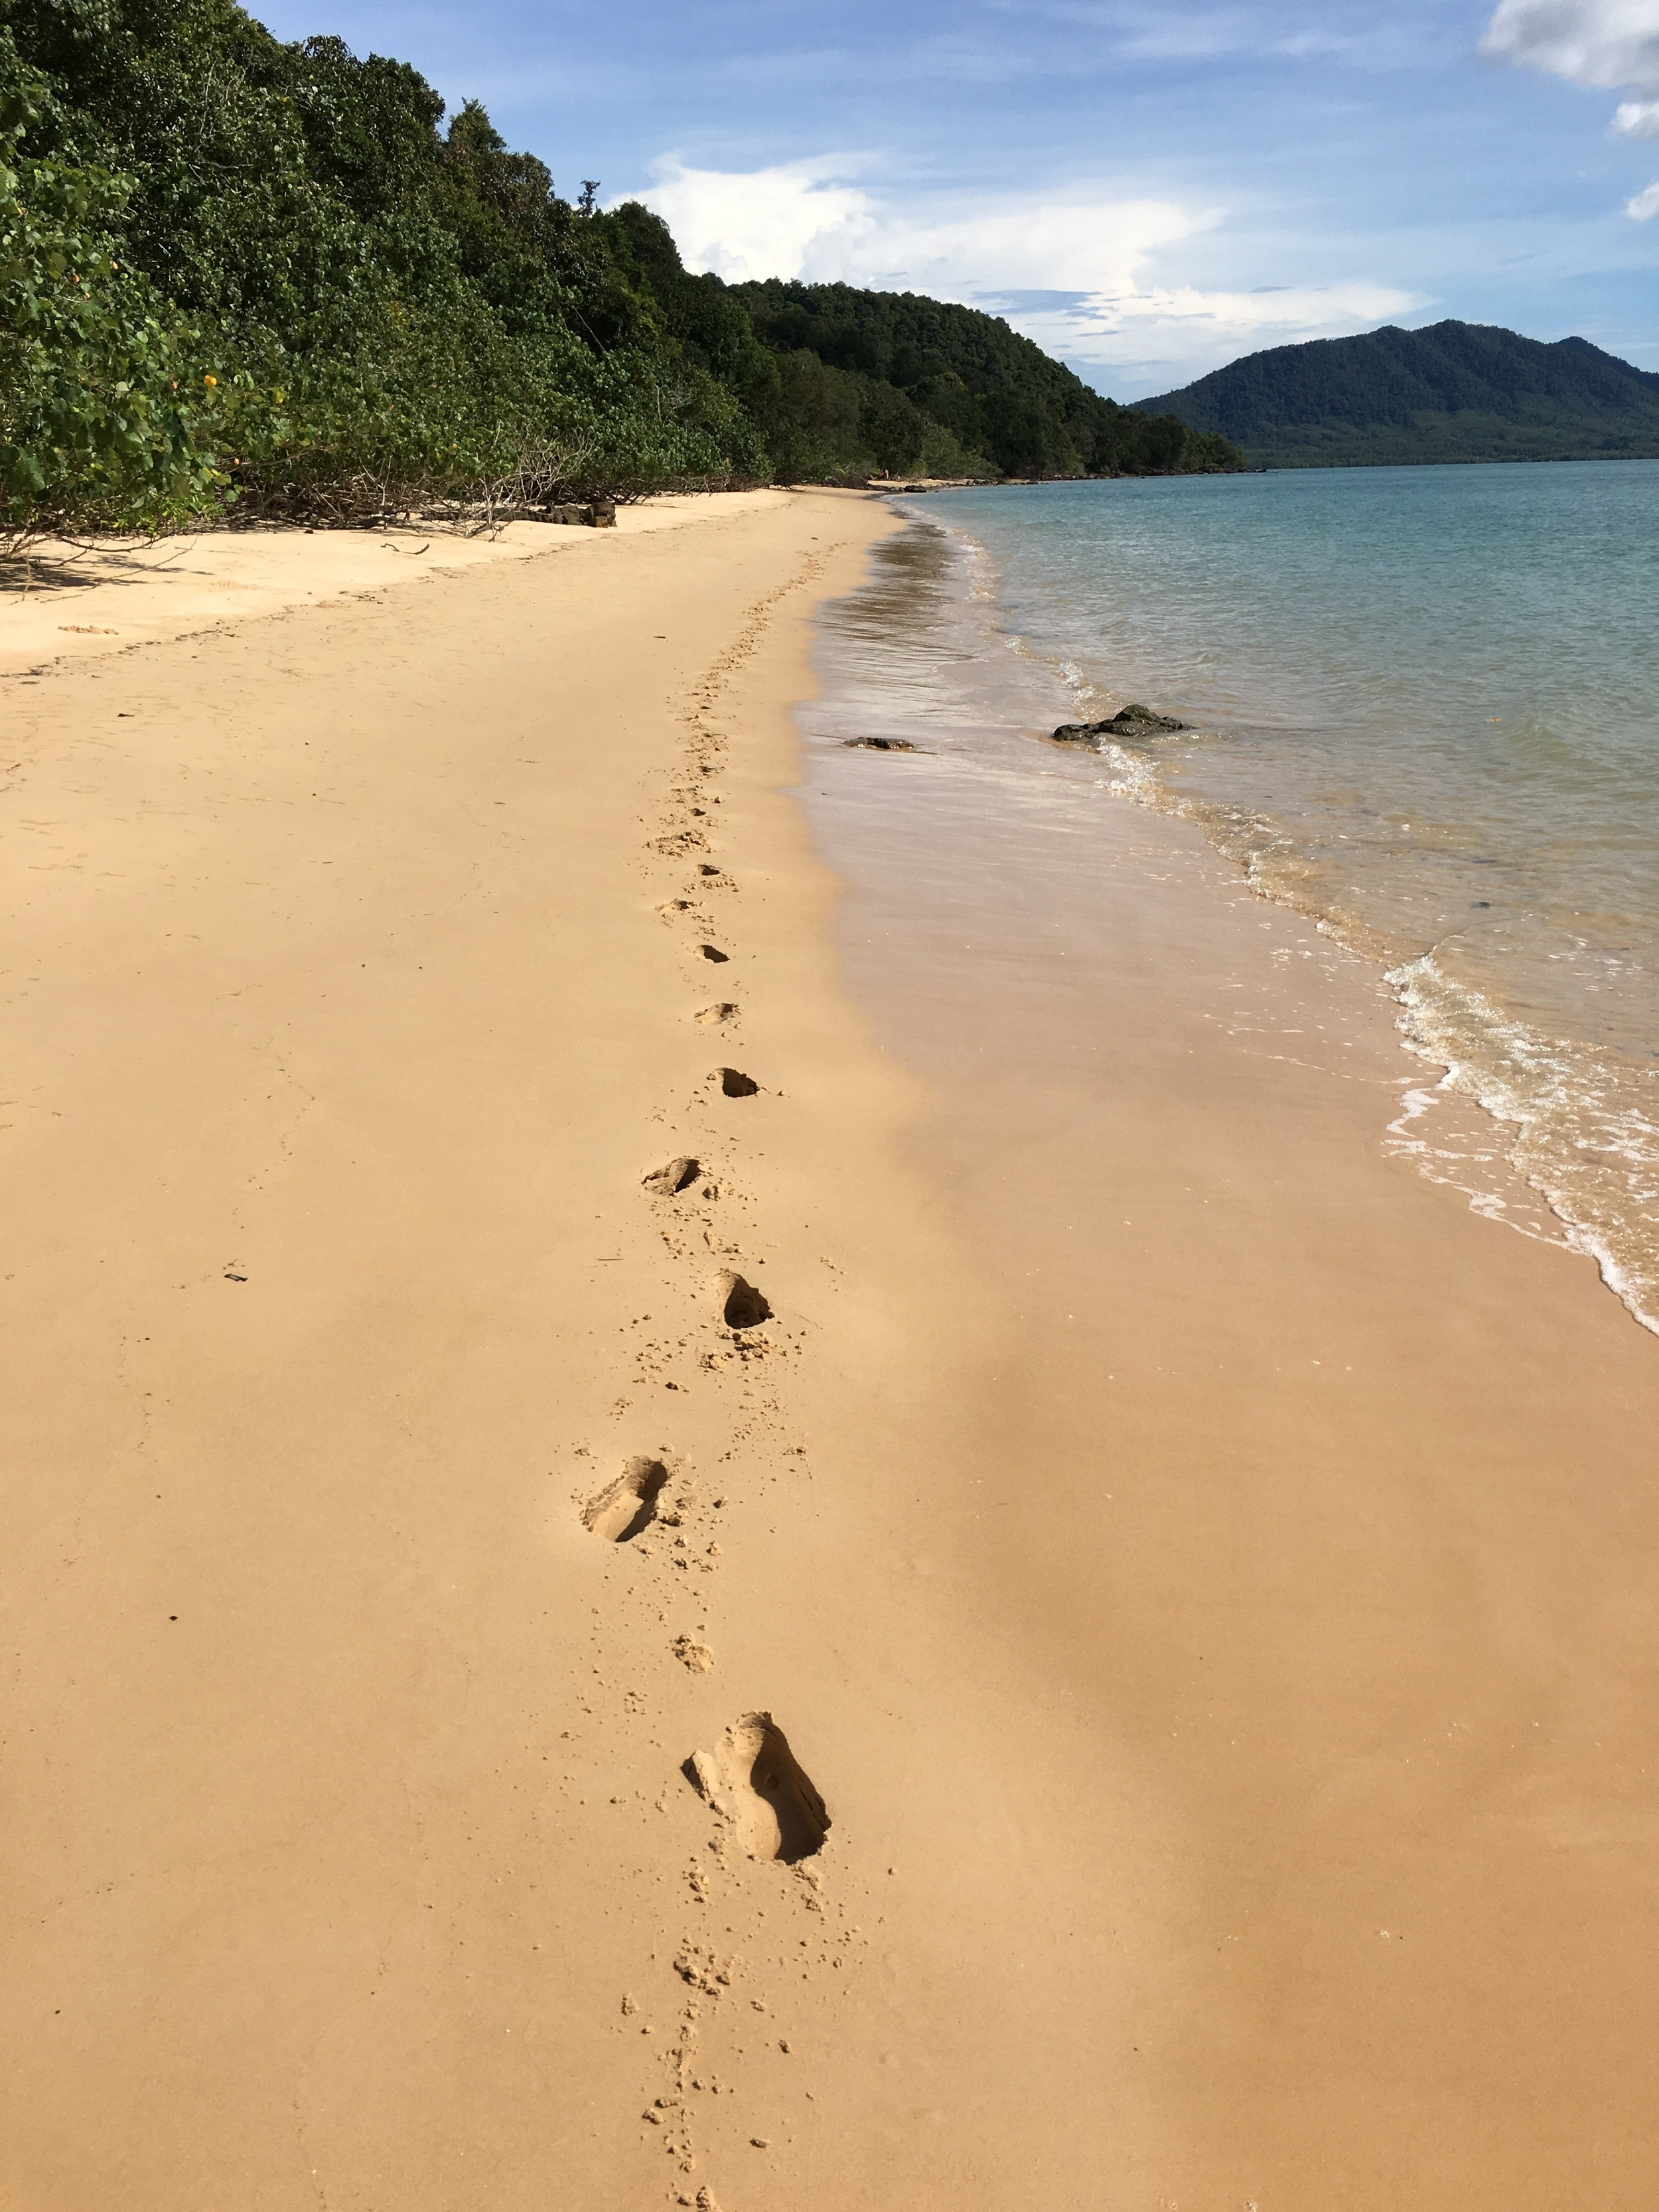 Only my footprints in the sand. I didn't see a single person on the beach the whole afternoon.